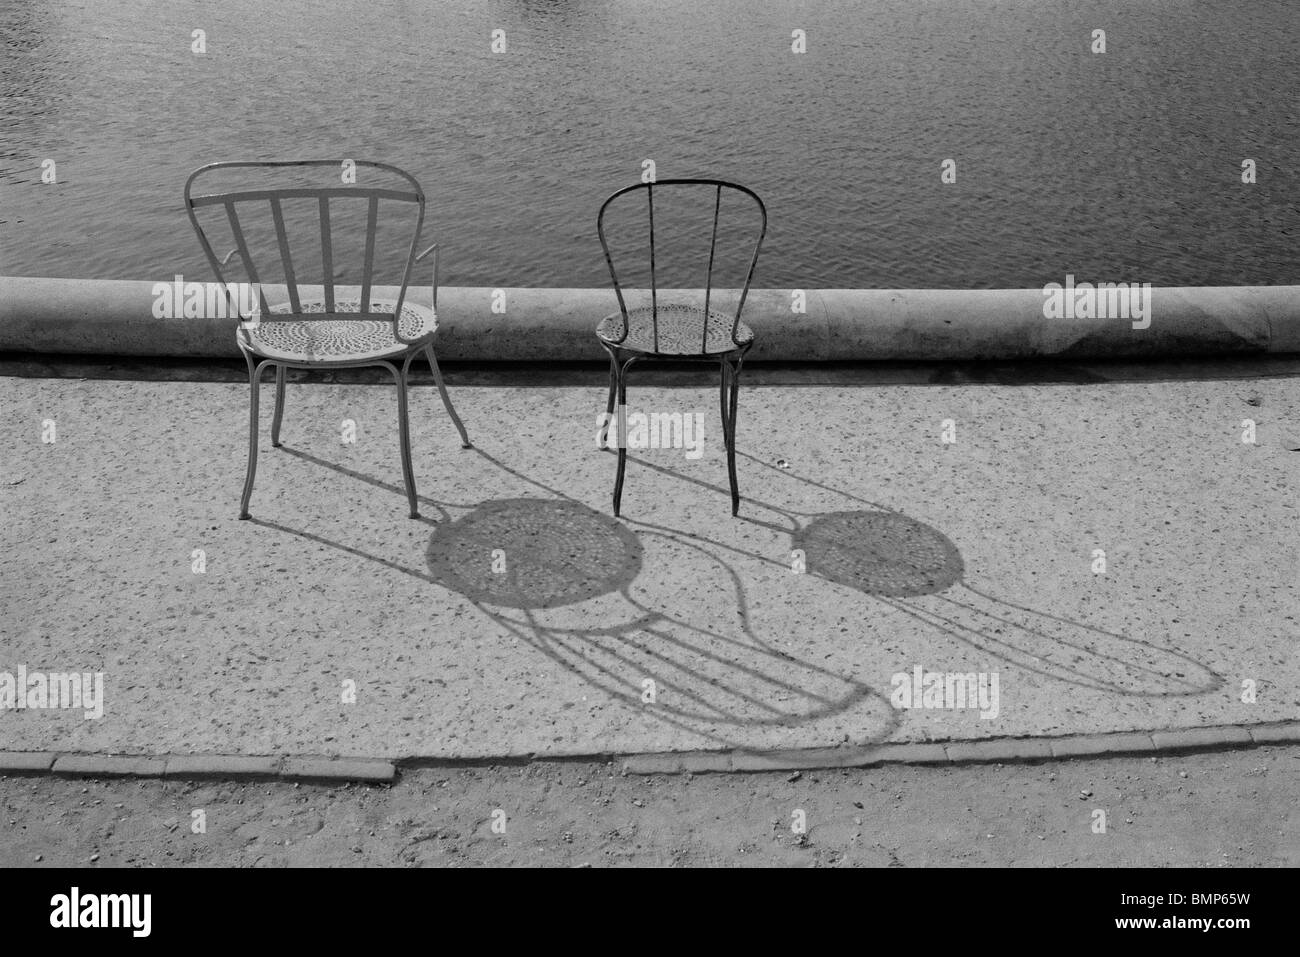 A black and white photograph of two chairs in the Tuileries Gardens,Paris, France. - Stock Image